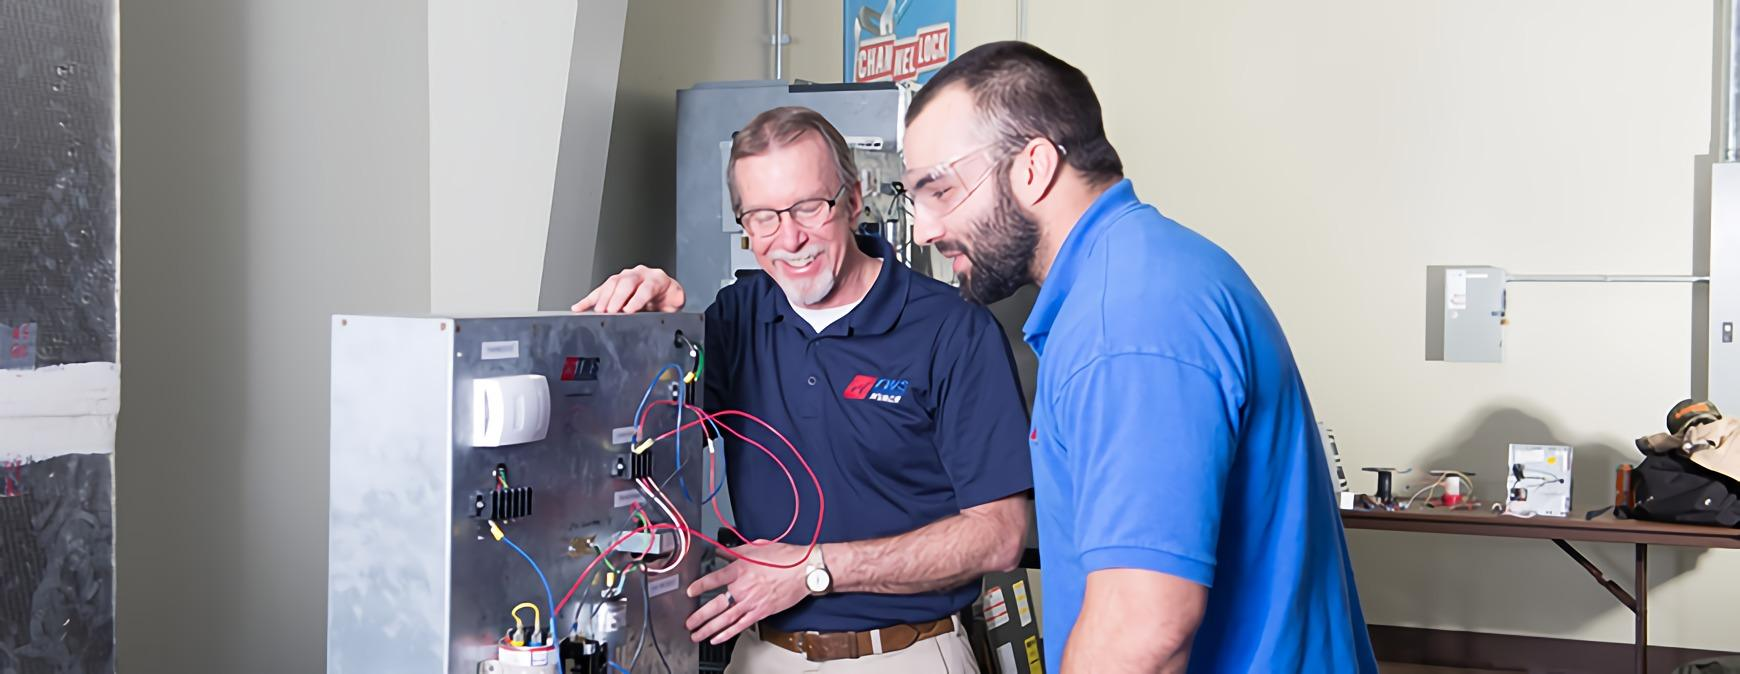 learning hvac electrical engineering